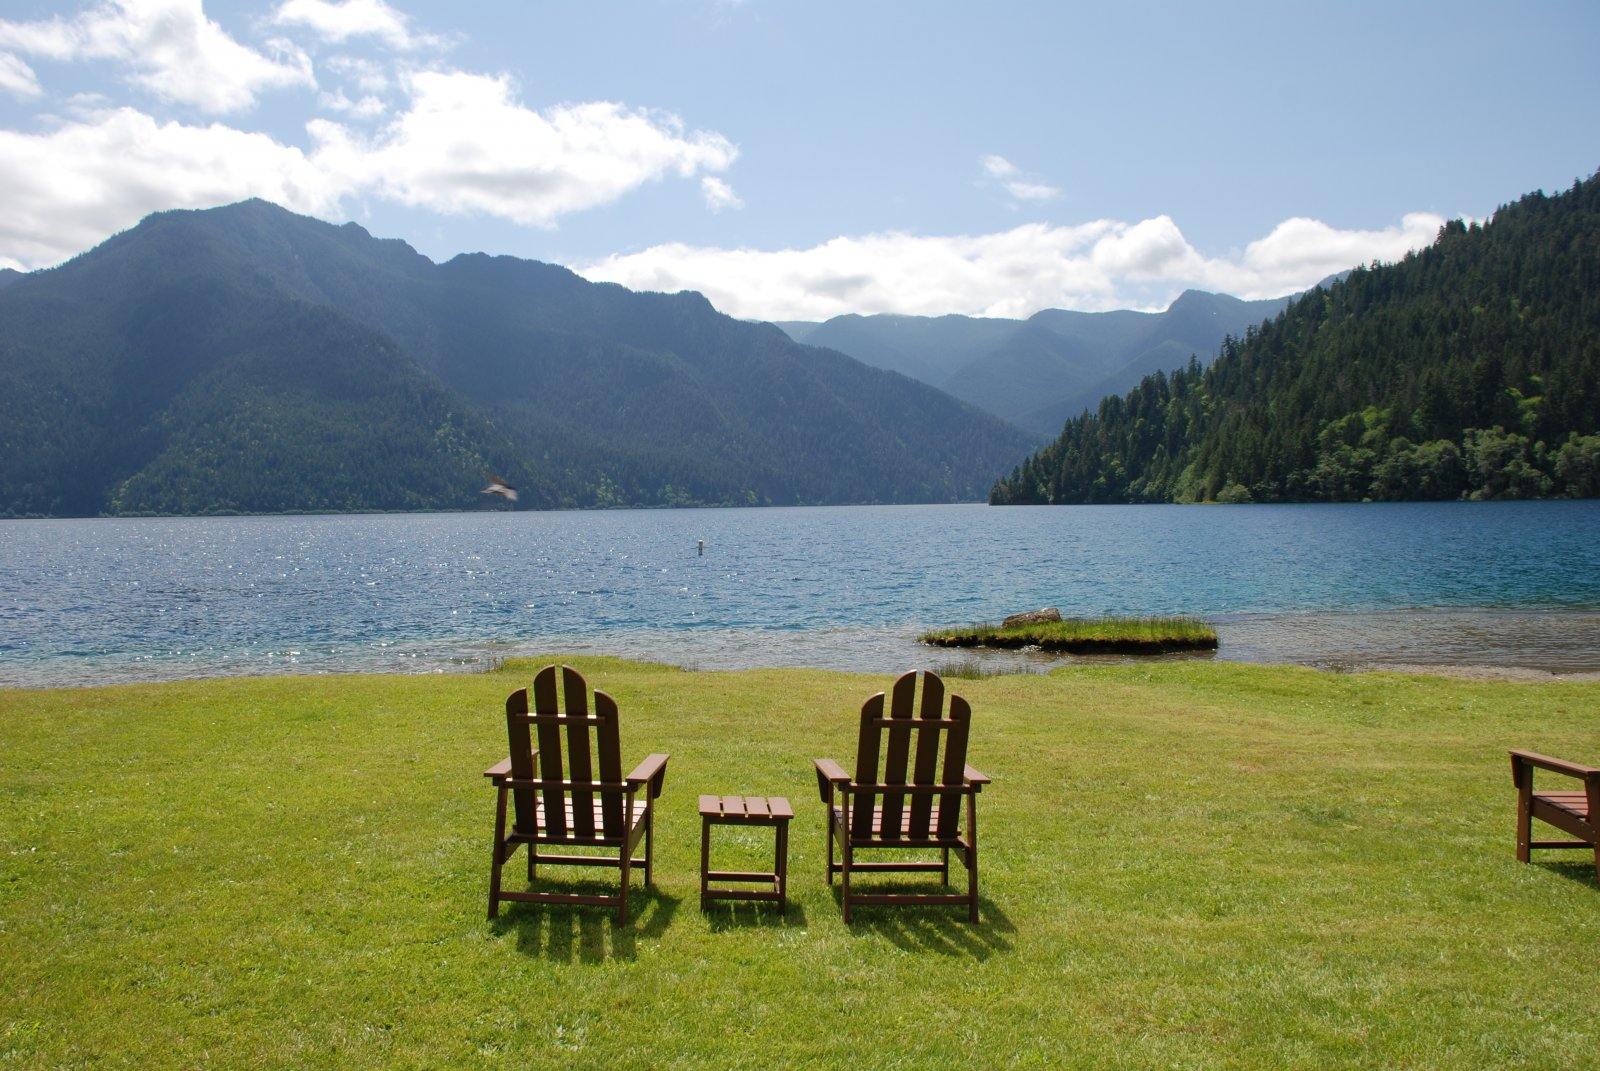 Click image for larger version  Name:Chairs and Lake Crescent View at Log Cabin Resort.jpg Views:74 Size:335.0 KB ID:217634